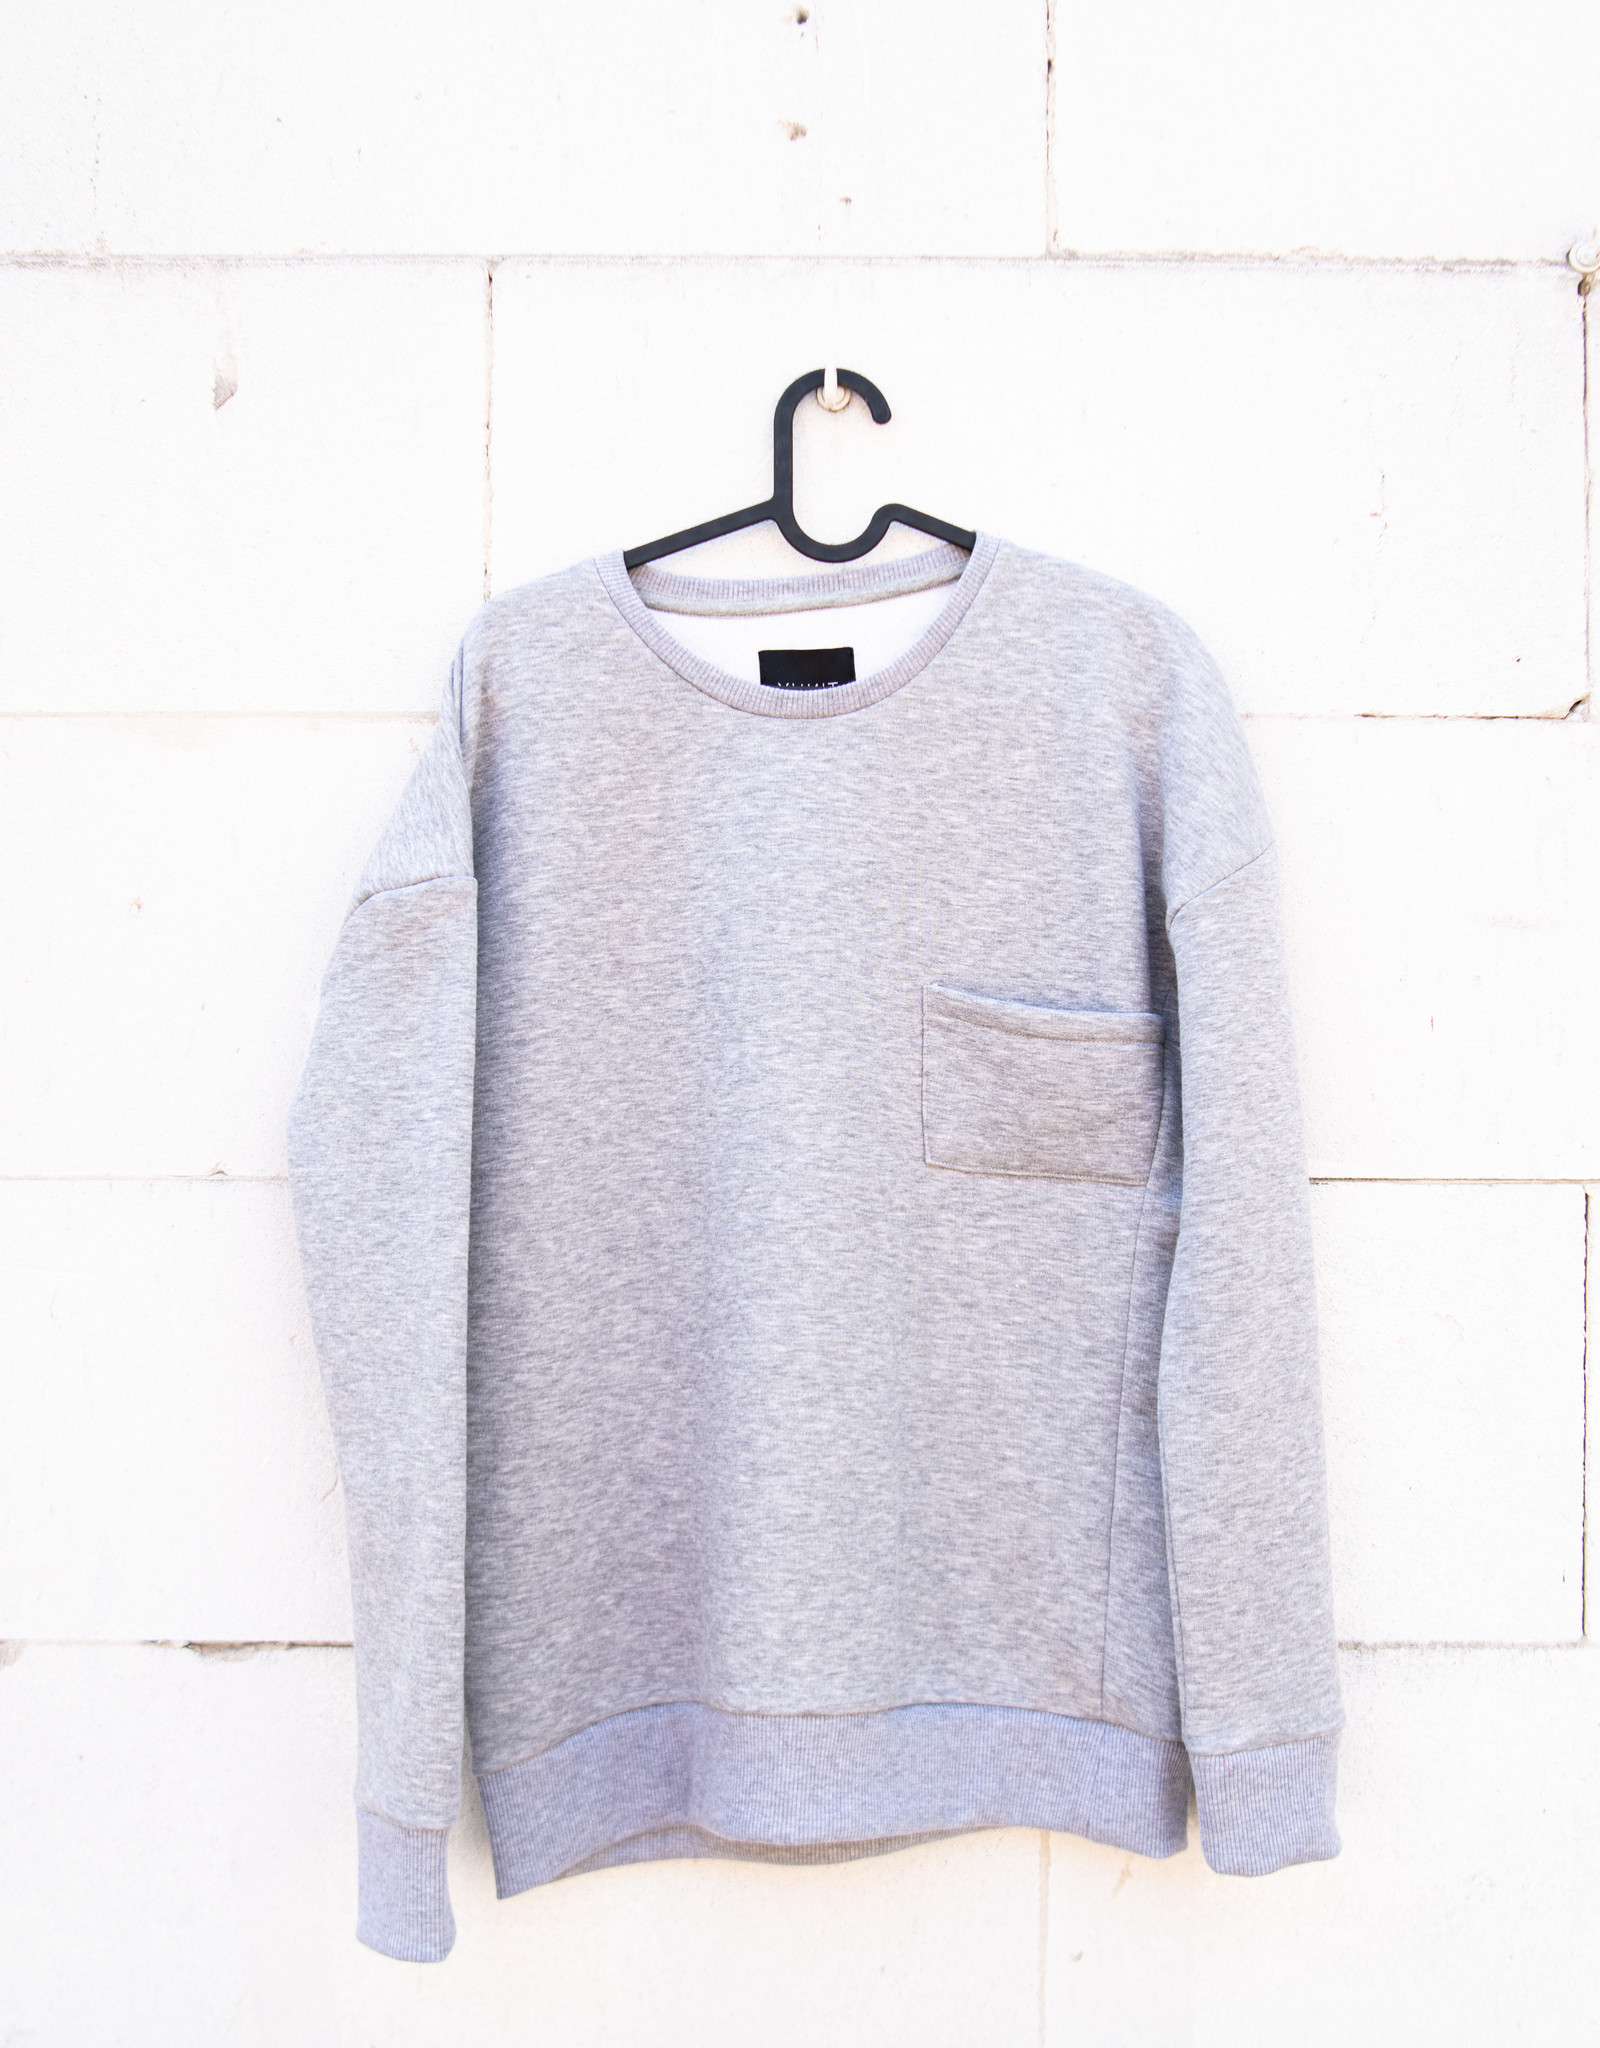 Leyo grey sweater